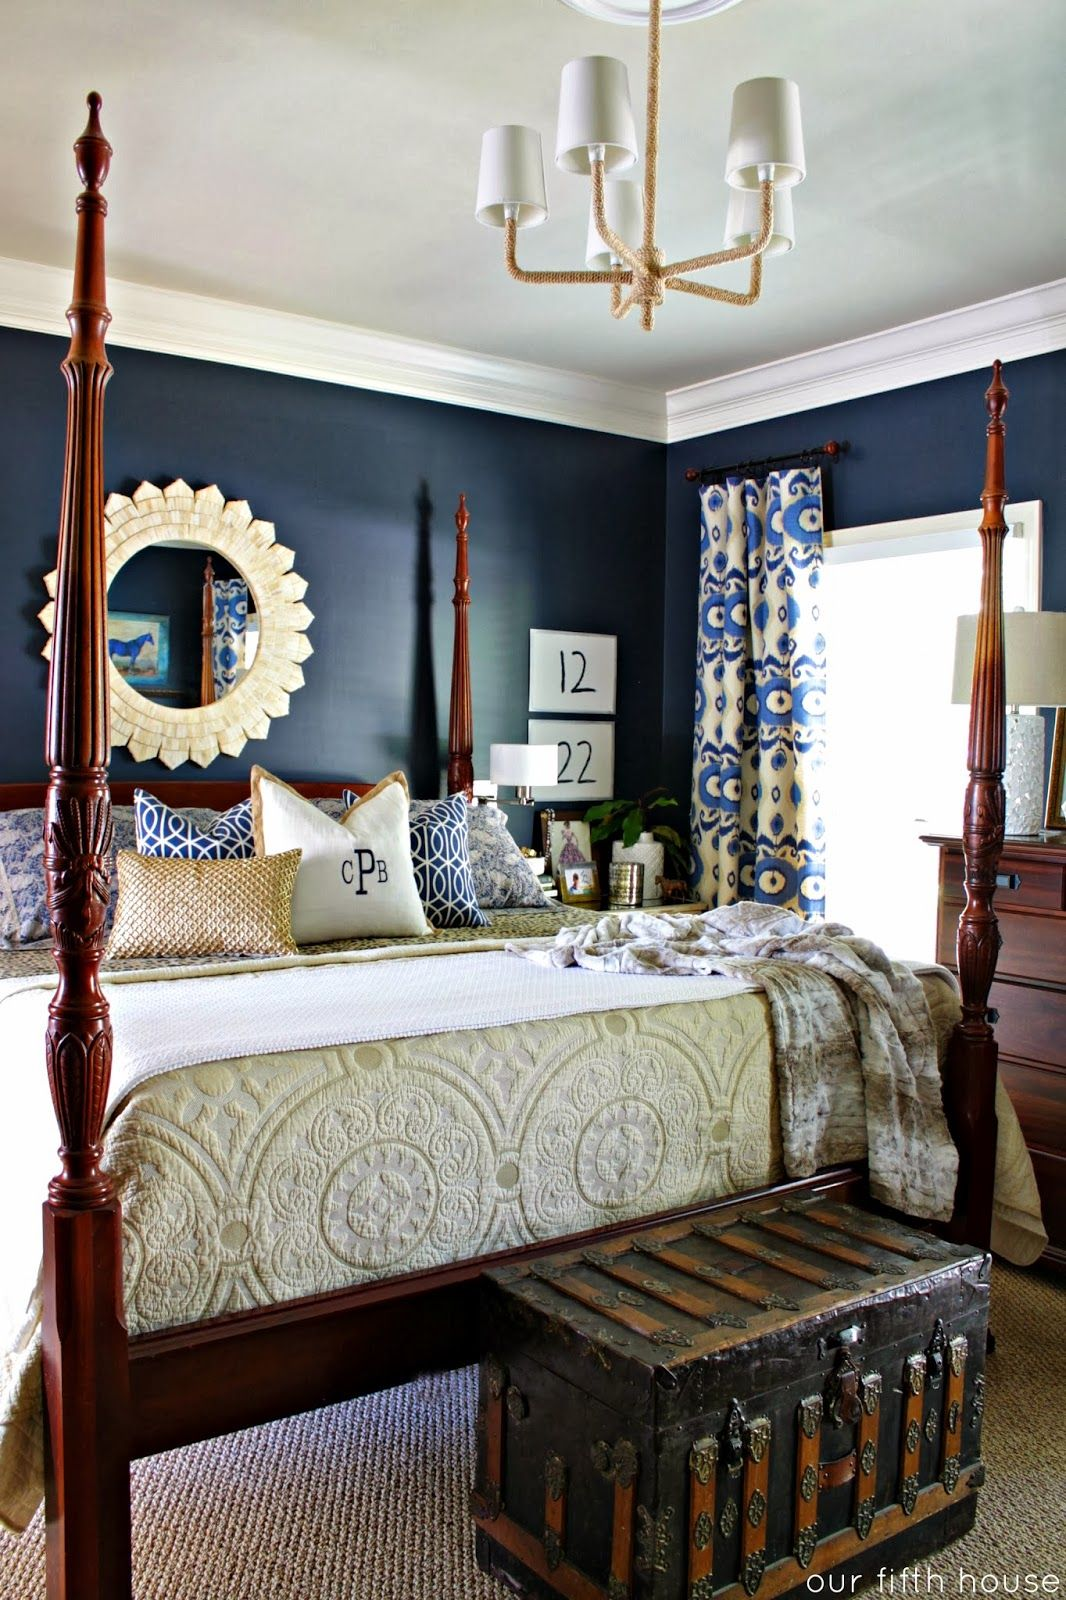 Striking Deep Blue Walls In This Master Bedroom Also Love The Simple Chandelier Master